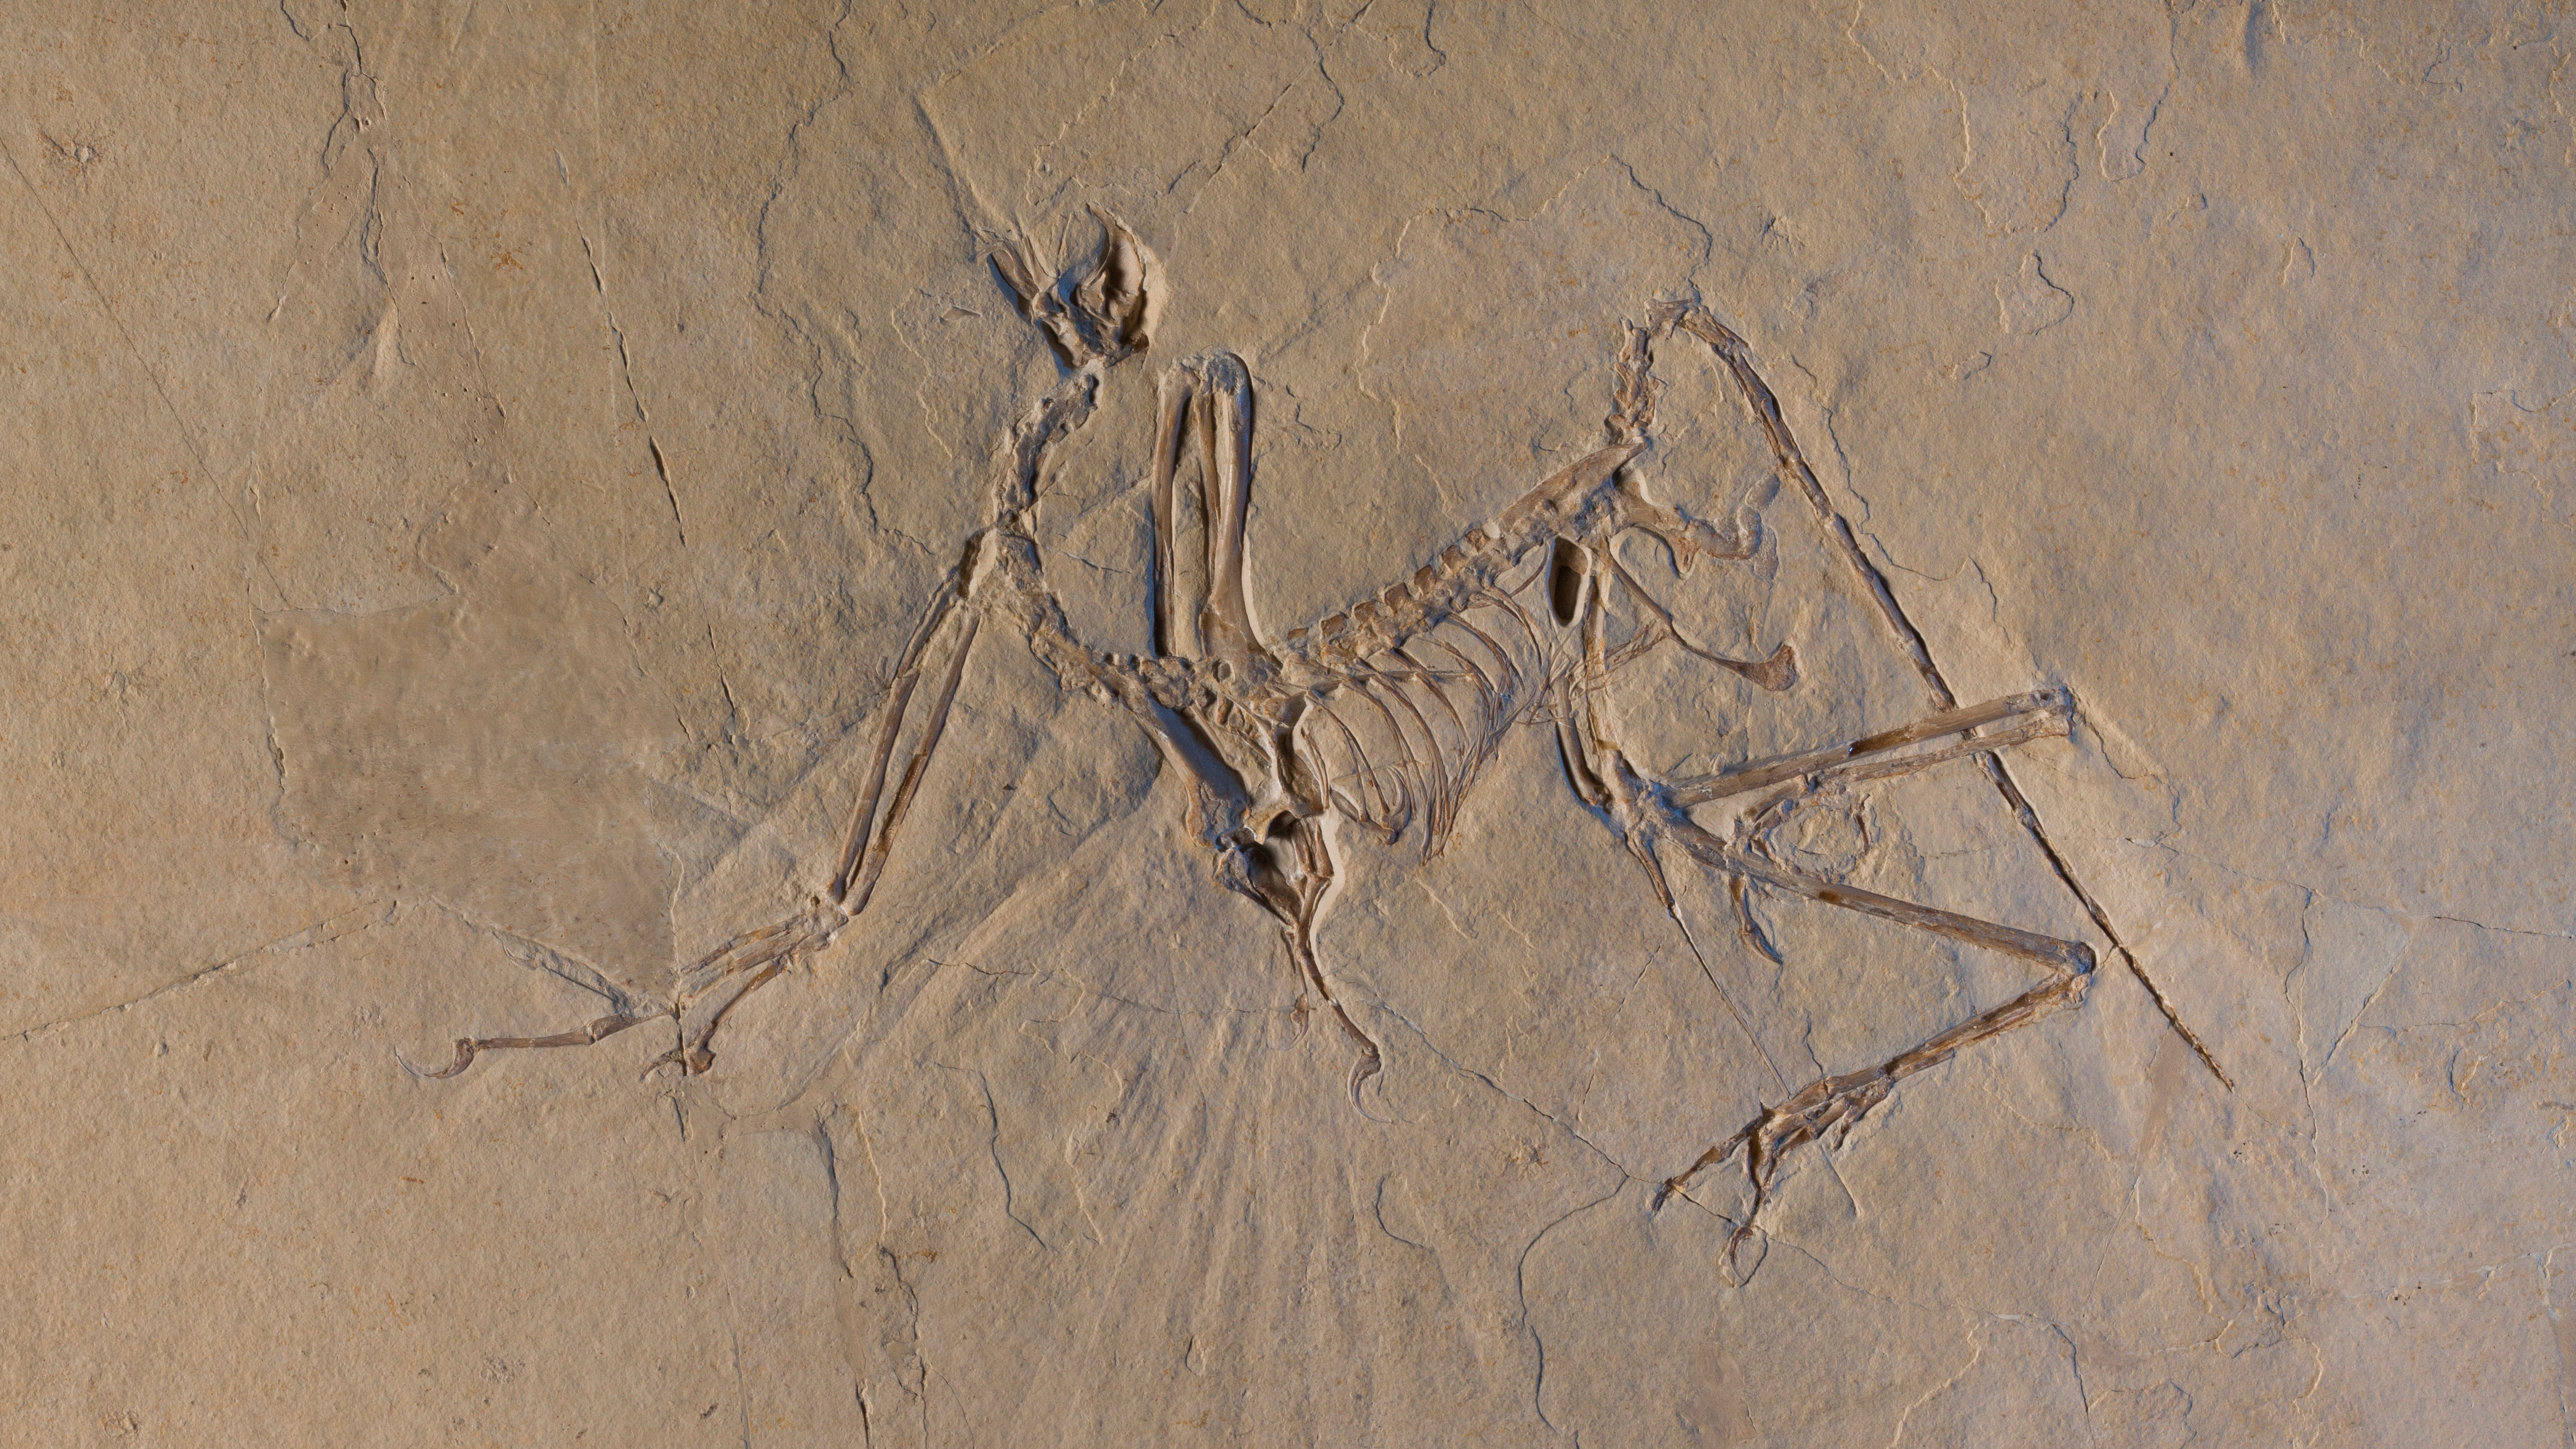 Winged Archaeopteryx Dino Could Fly, But Scientists Just Don't Know How